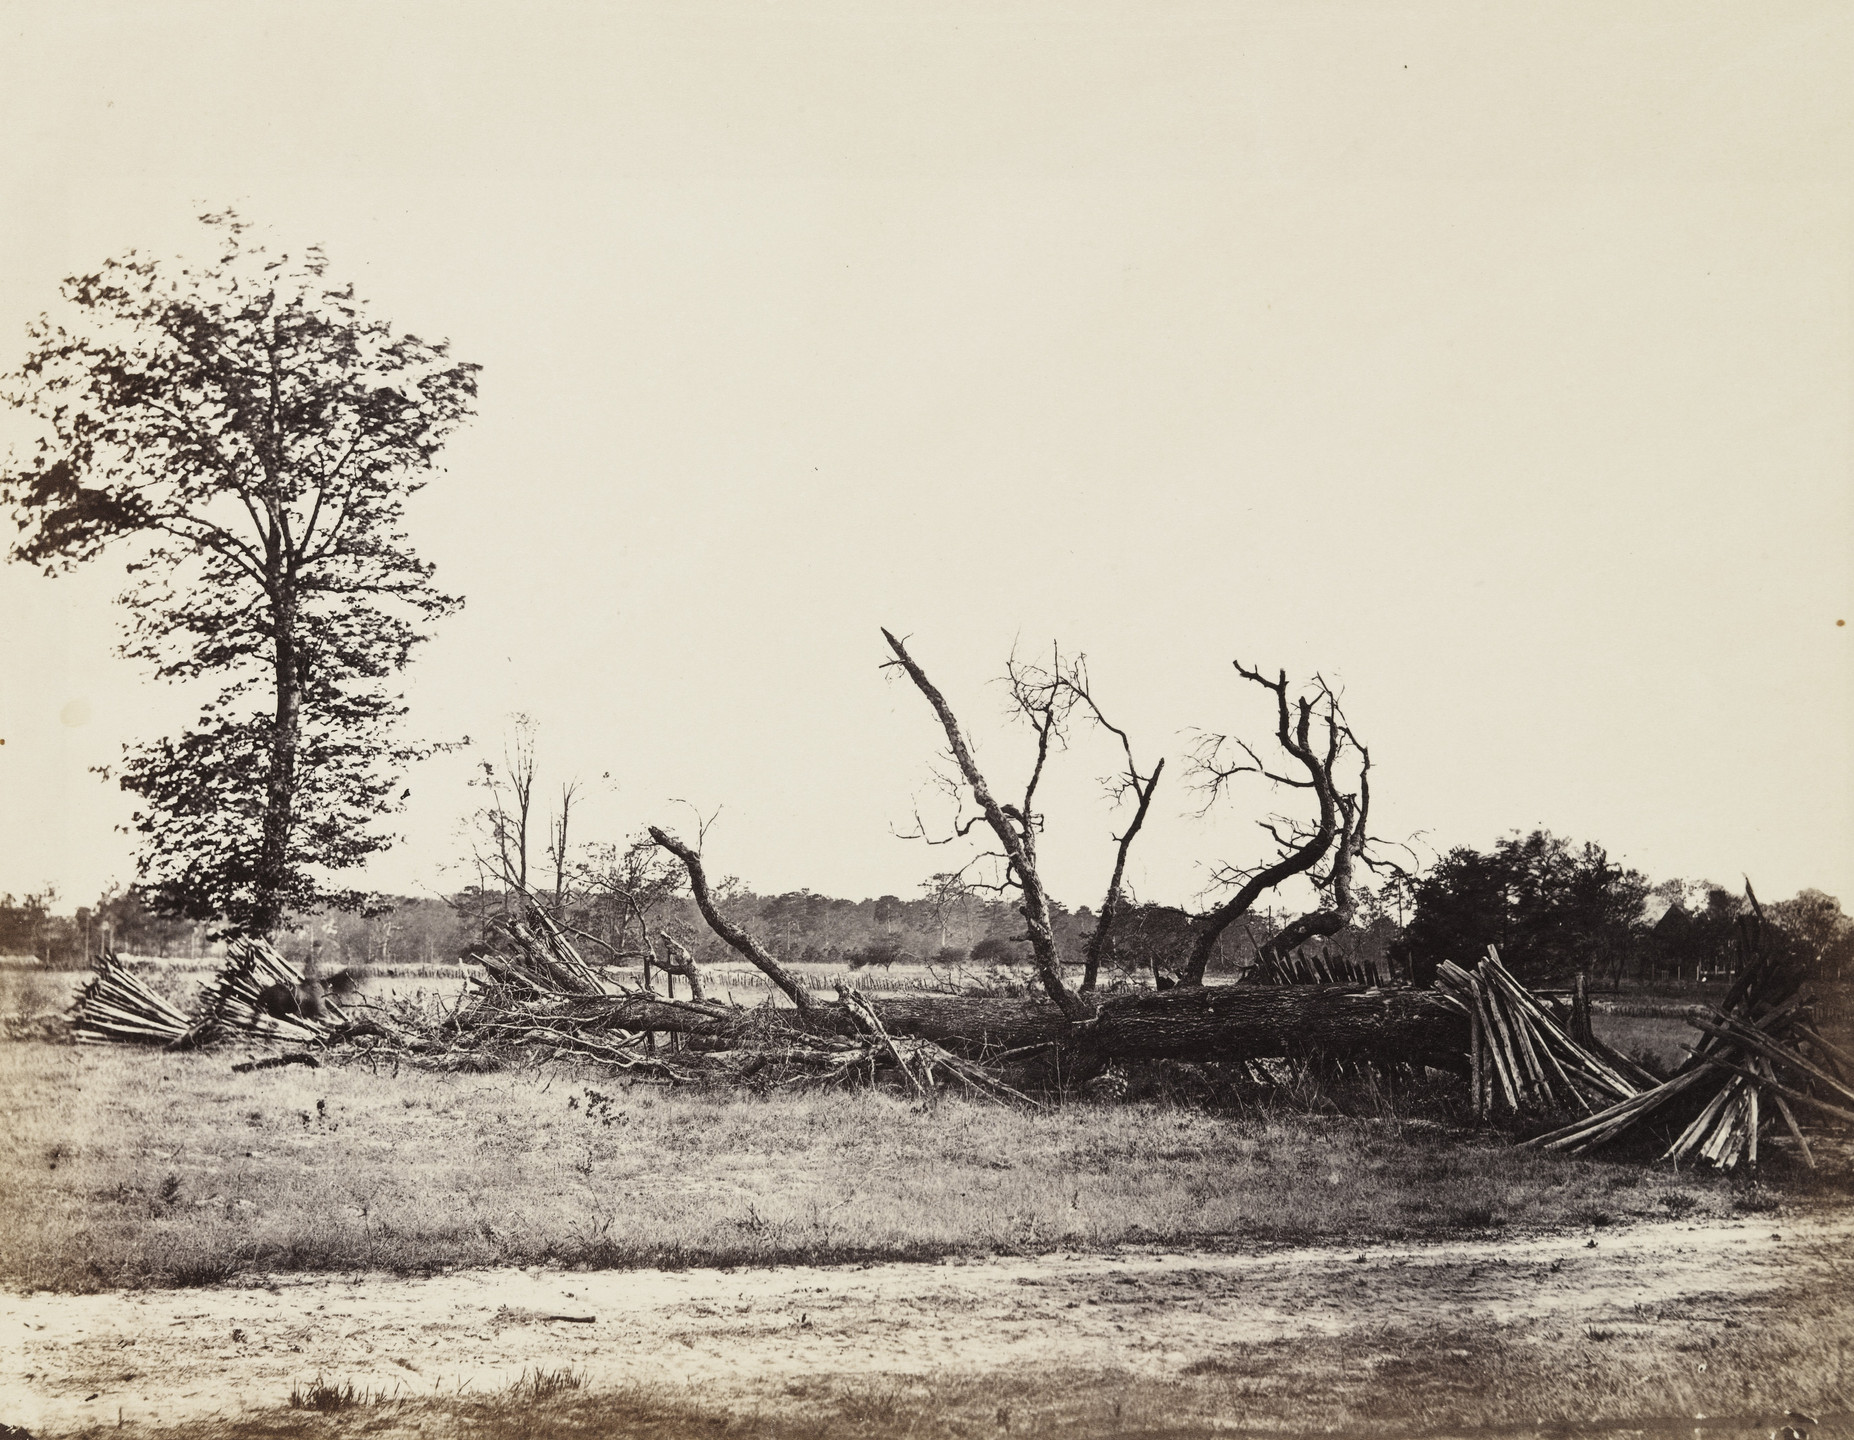 Alexander Gardner. Extreme line of Confederate works, Cold Harbor, Virginia. April, 1865